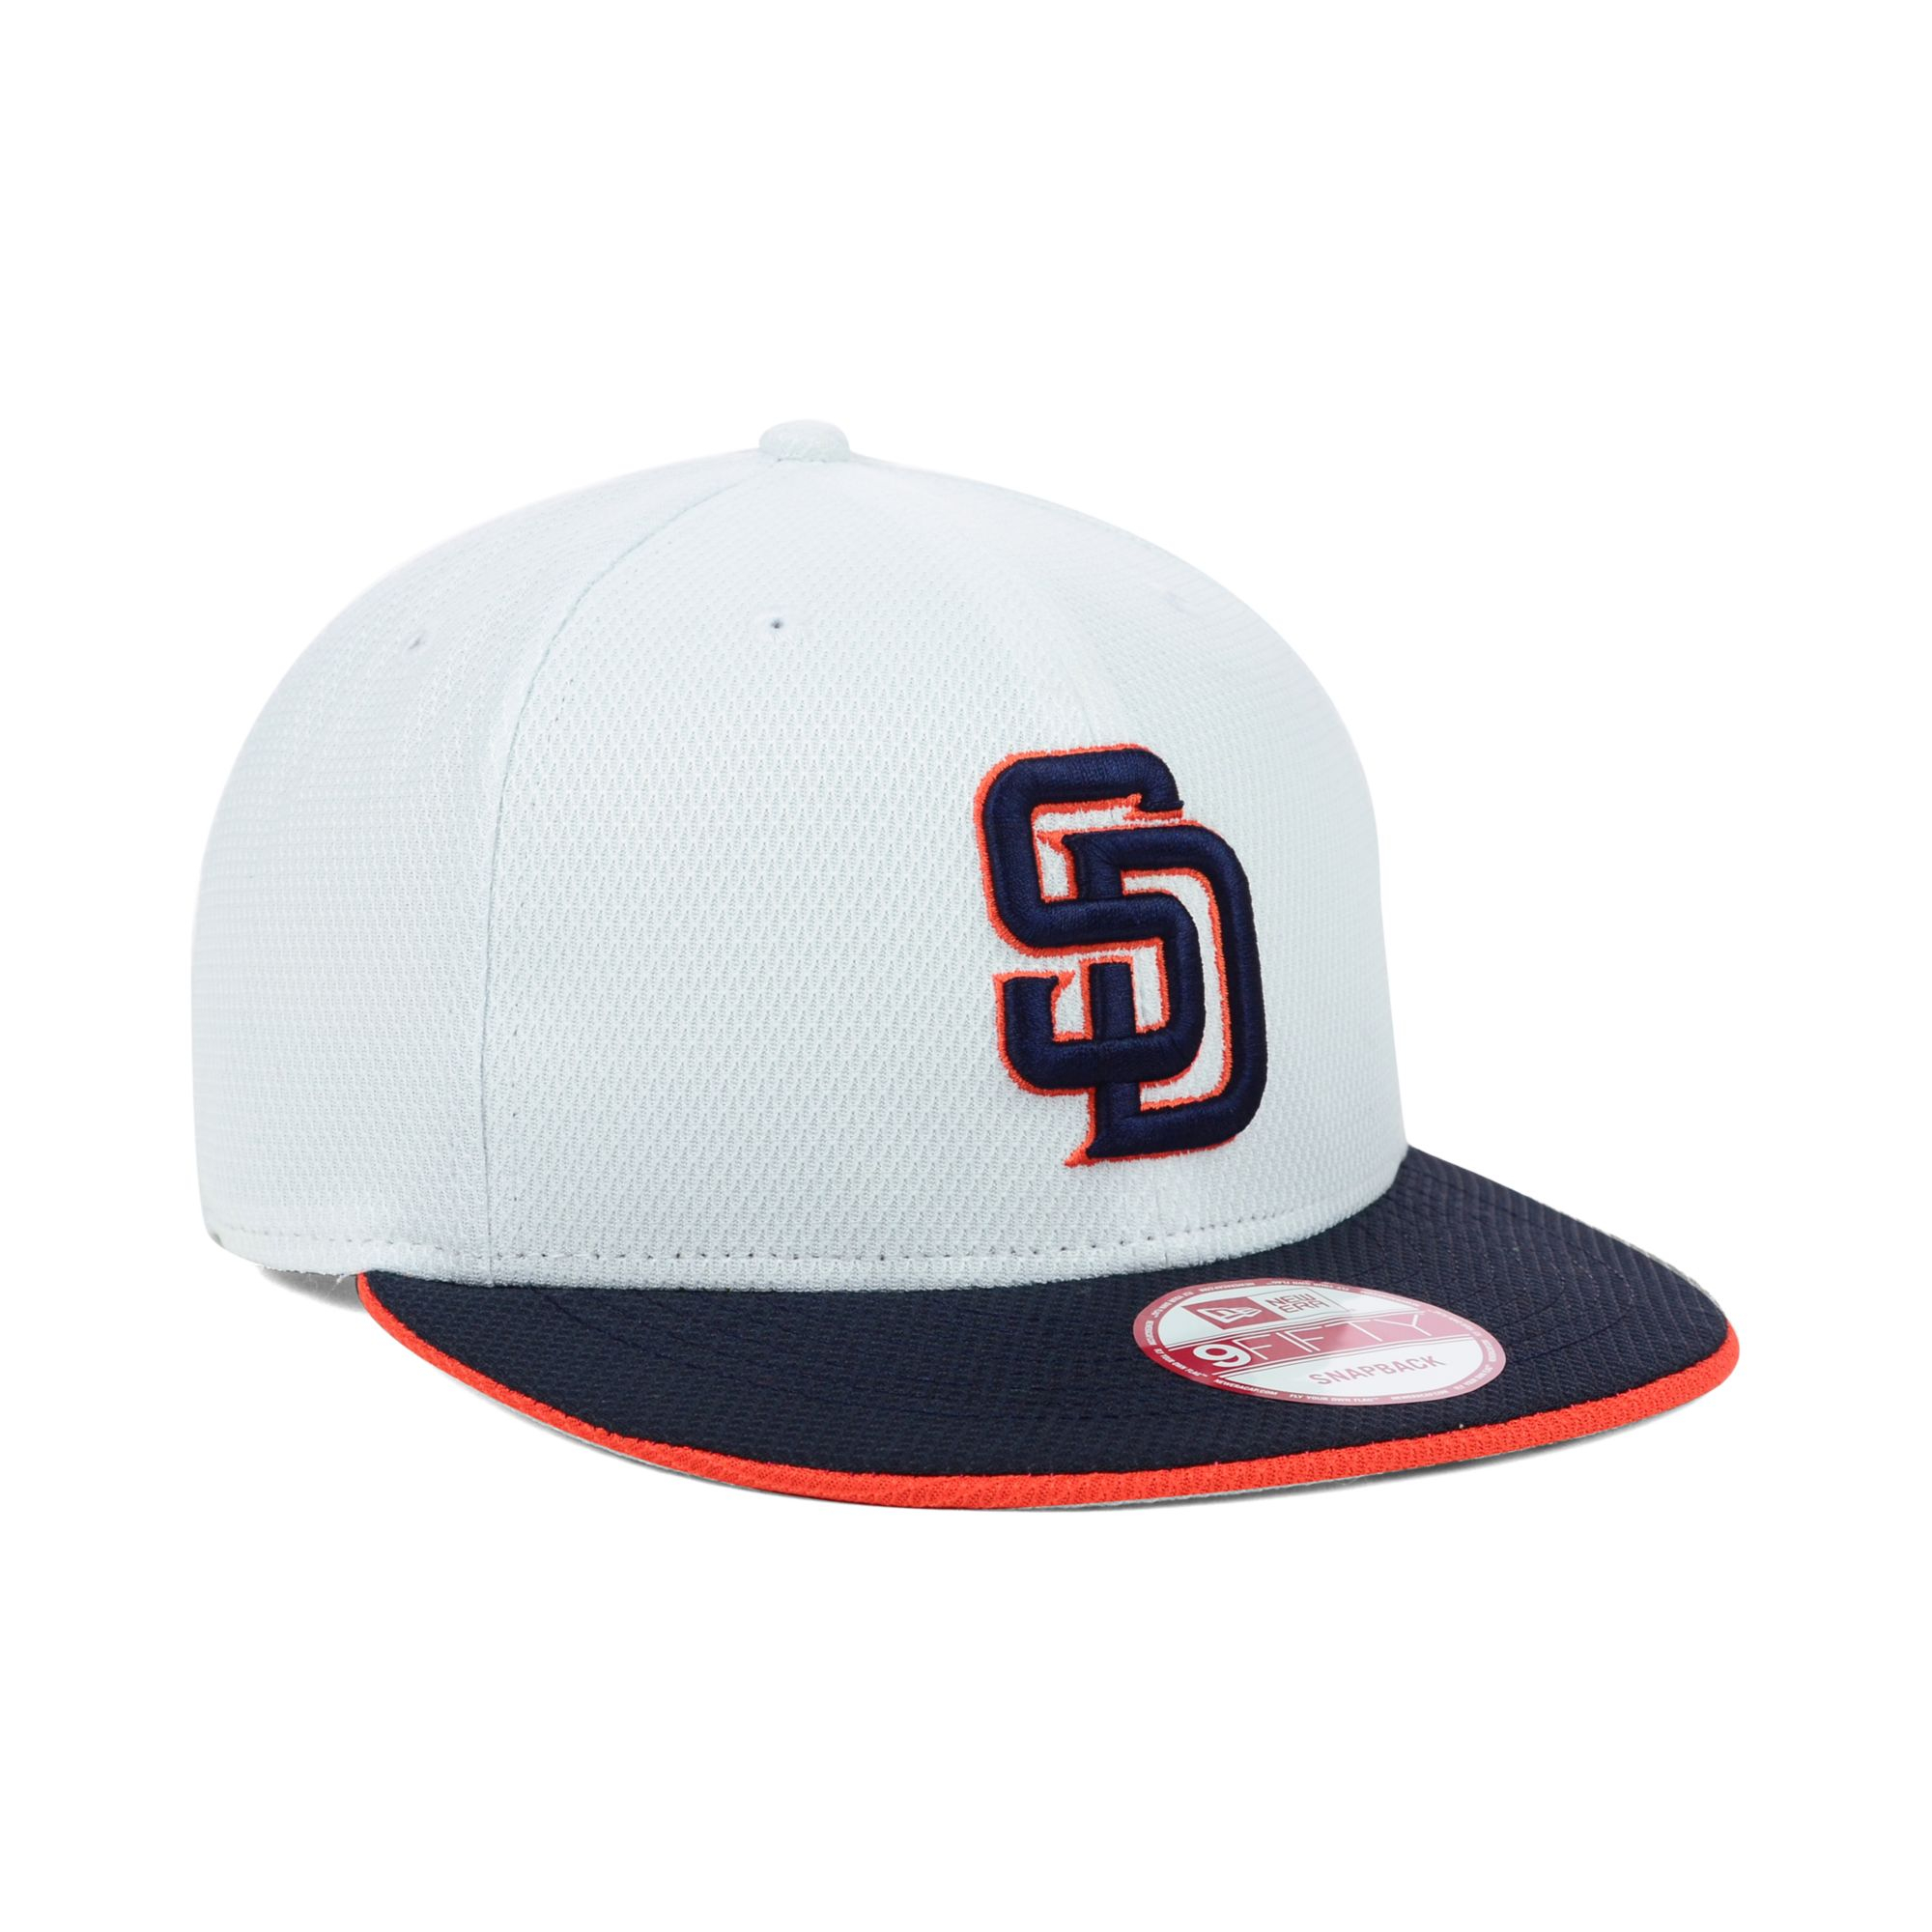 the latest 9d581 19d99 where can i buy lyst ktz san diego padres mlb white diamond era 9fifty  snapback 644c2